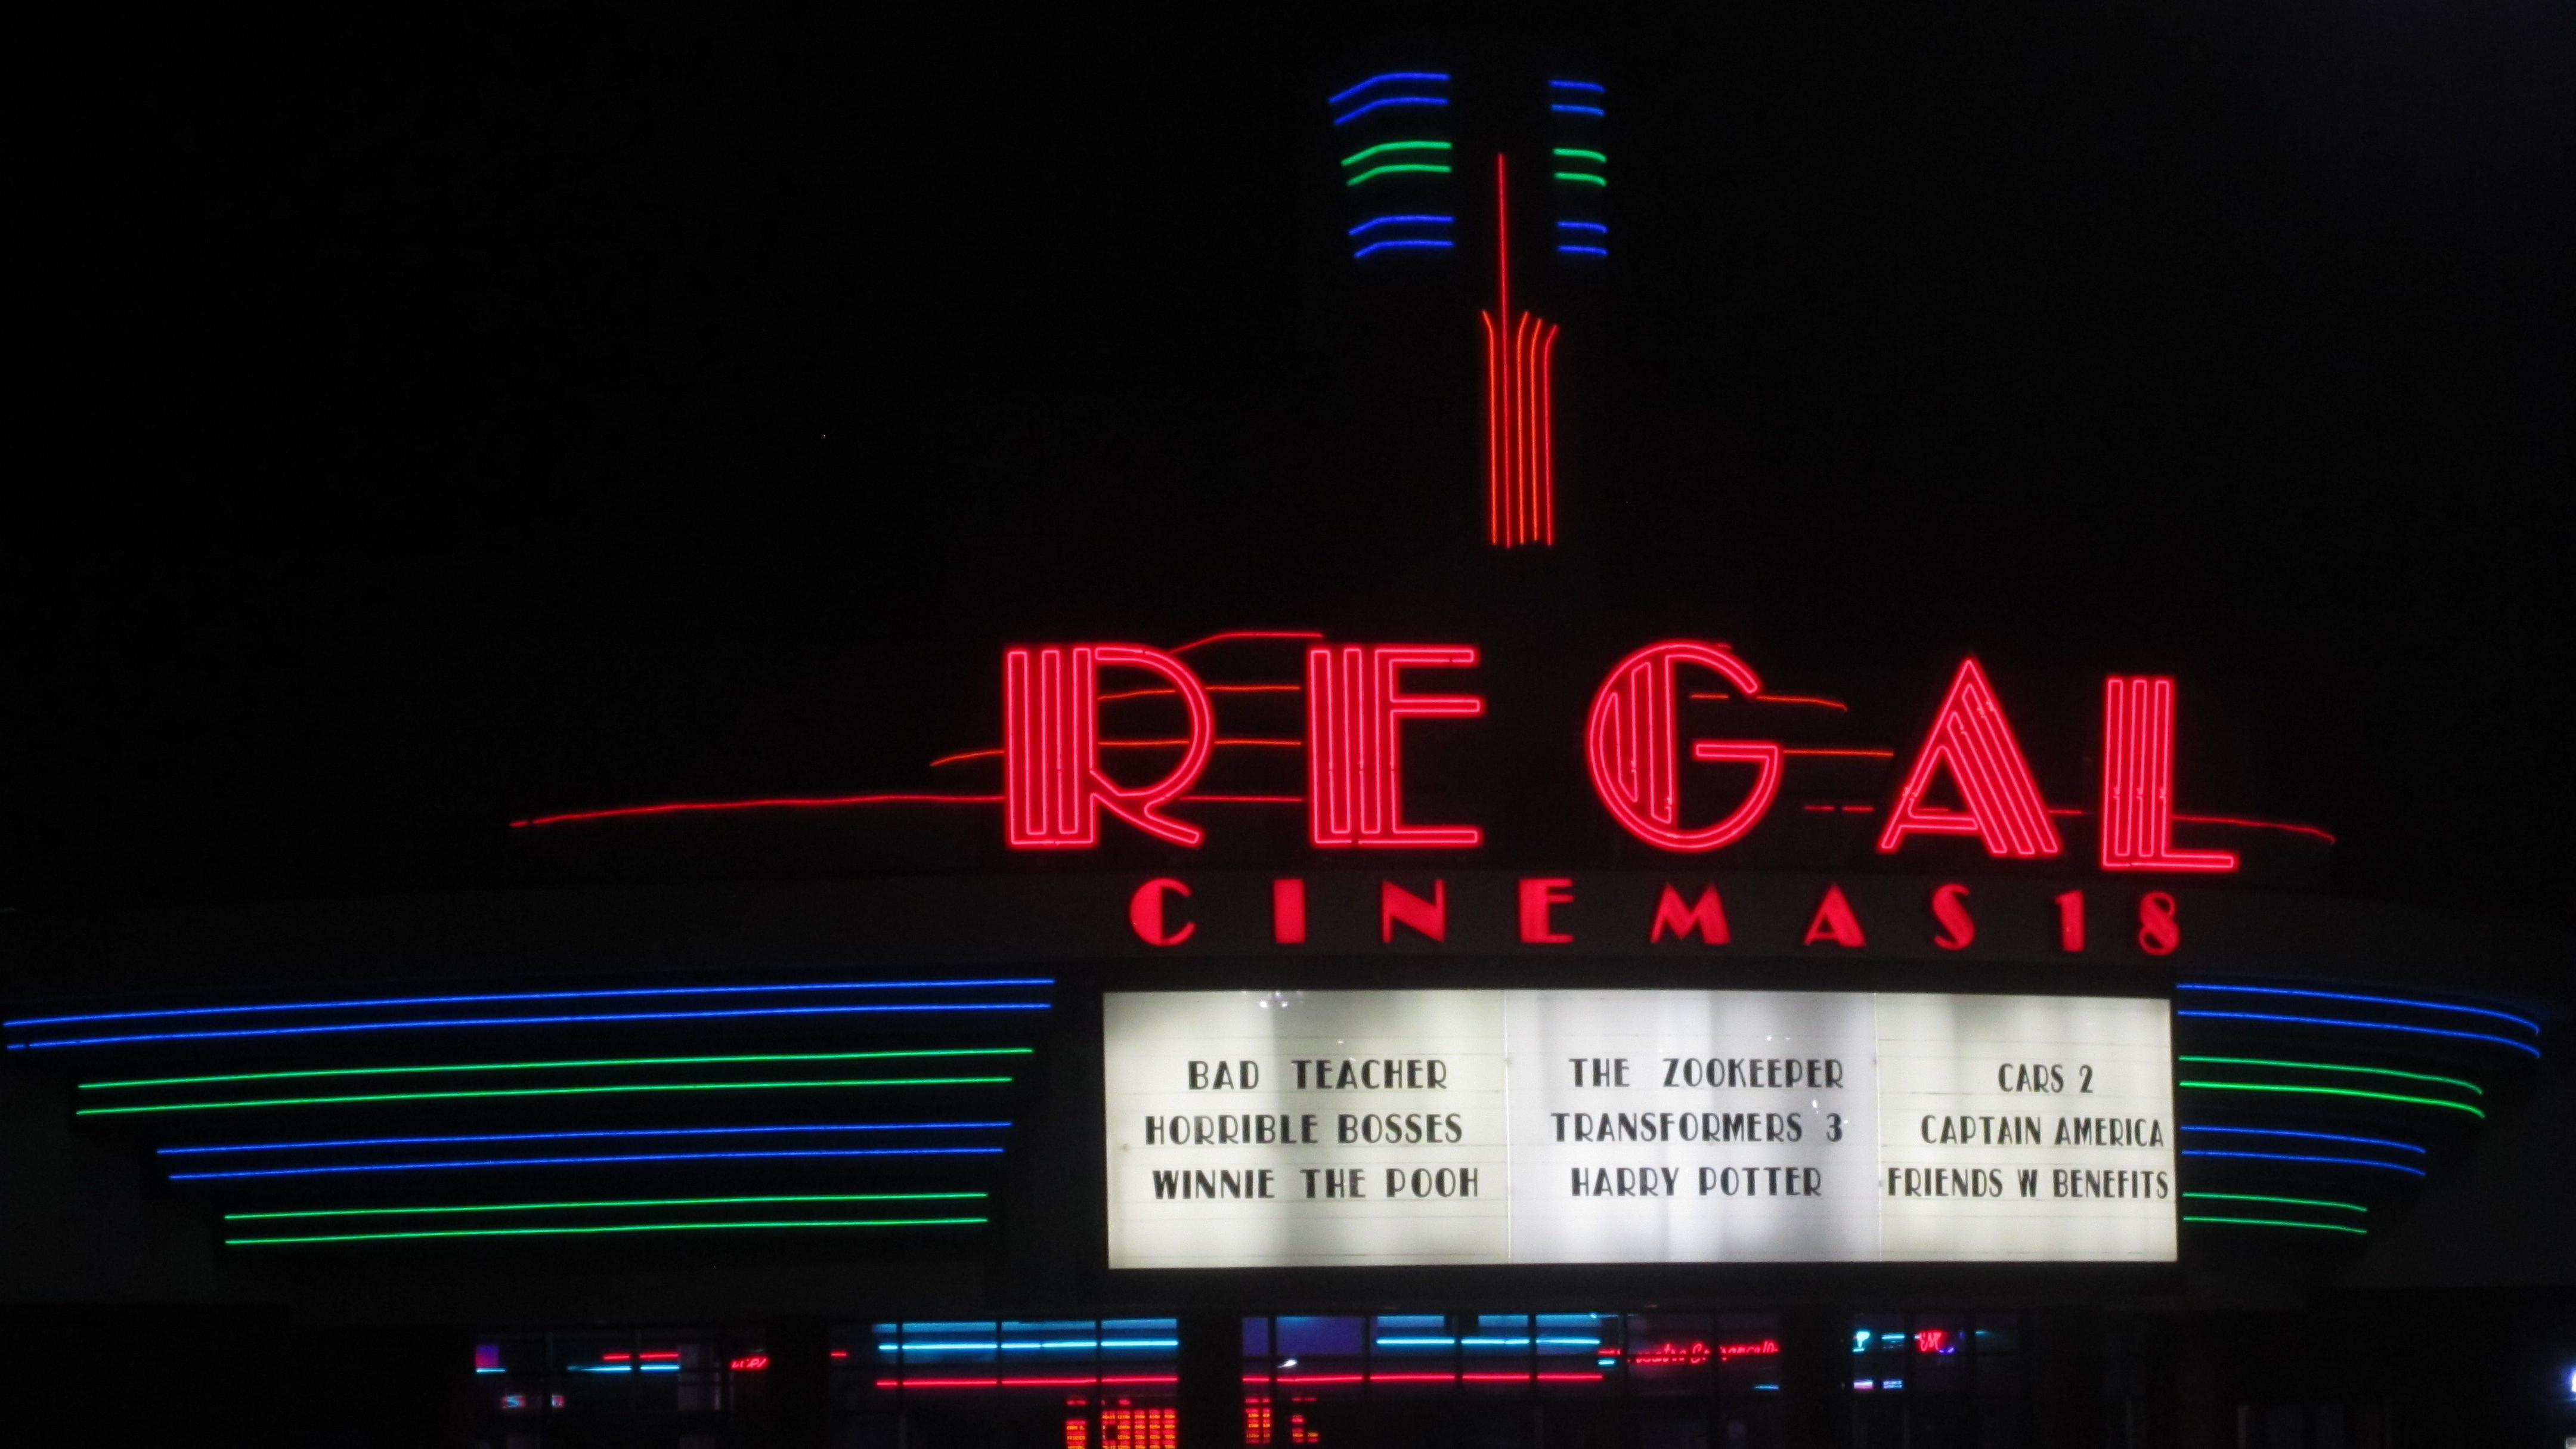 Regal Cinemas To Check Bags Upon Entry Into Movie Theaters : NPR